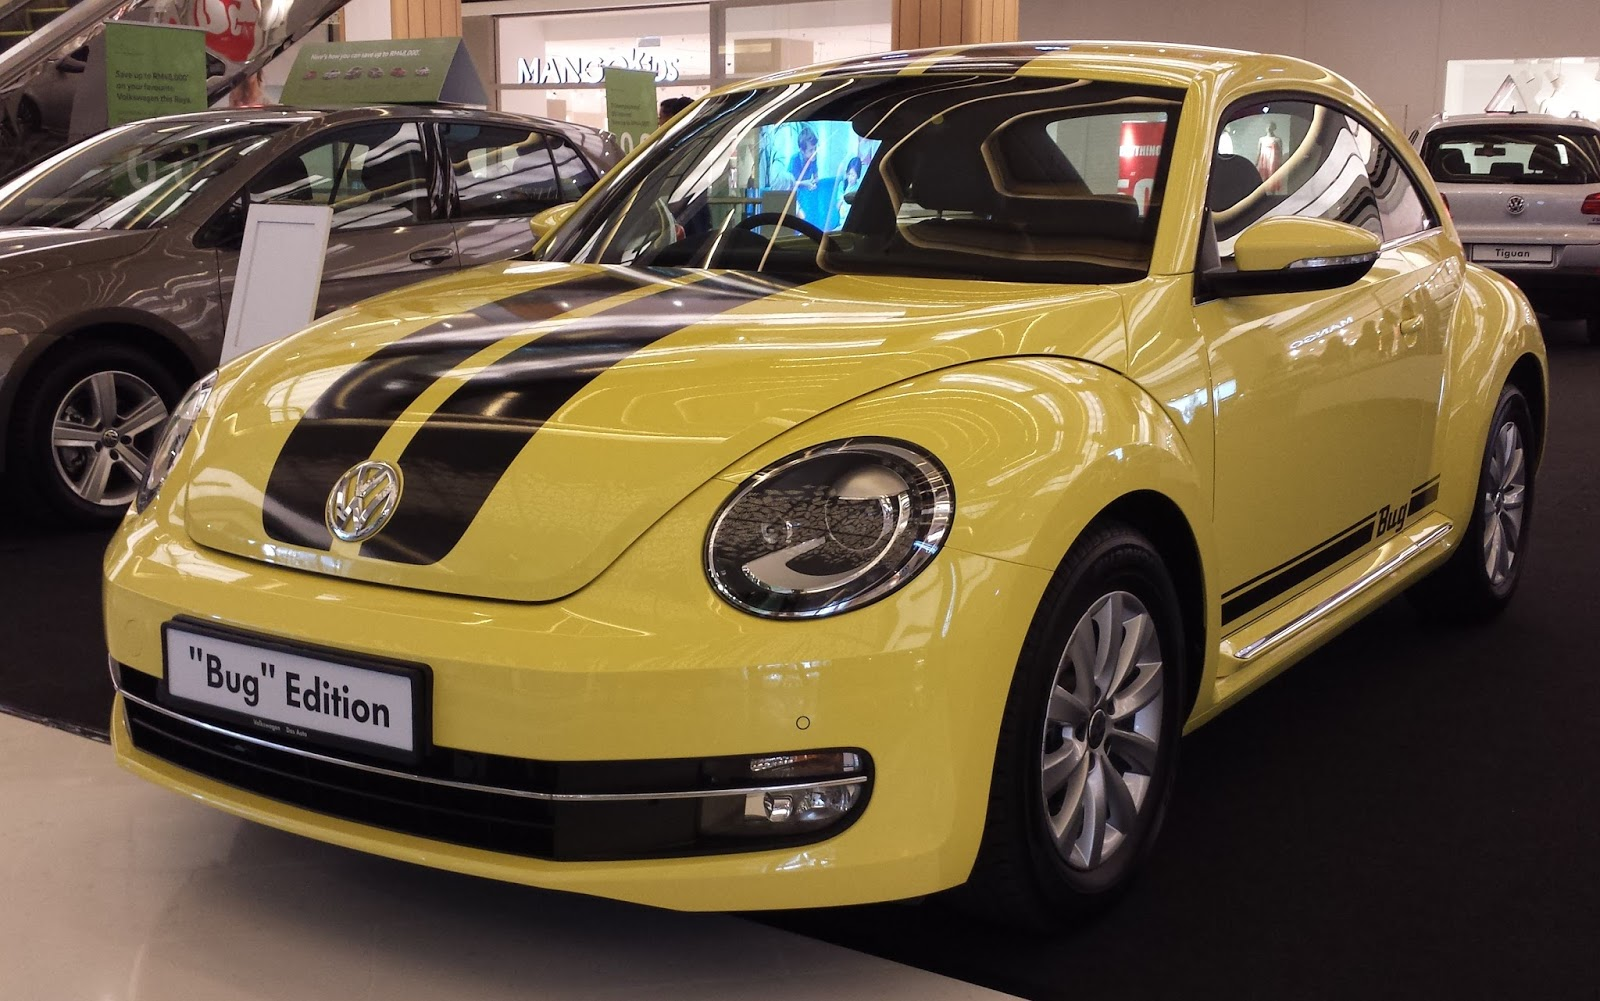 The layman auto the bug edition volkswagen beetle the beetle designed to be more masculine has actually lost its cutesy appeal to most ladies nowadays those that knew the car well remembered the flower reviewsmspy